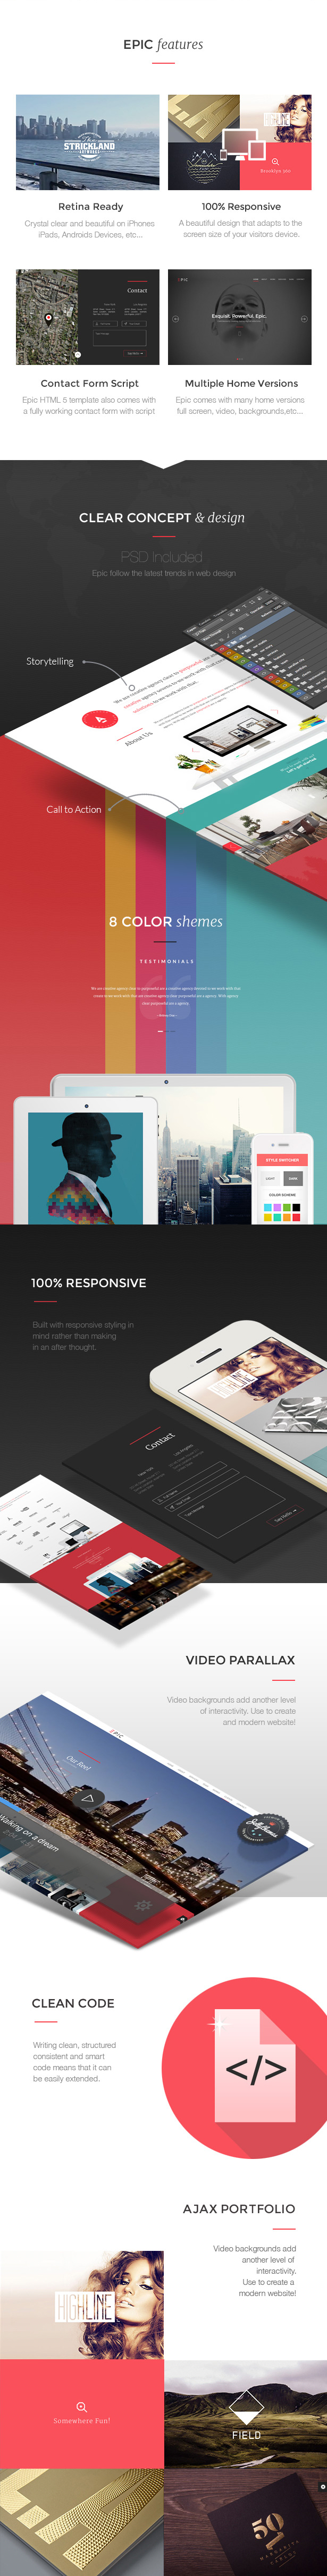 epic-html5-template-features-01-11-2014